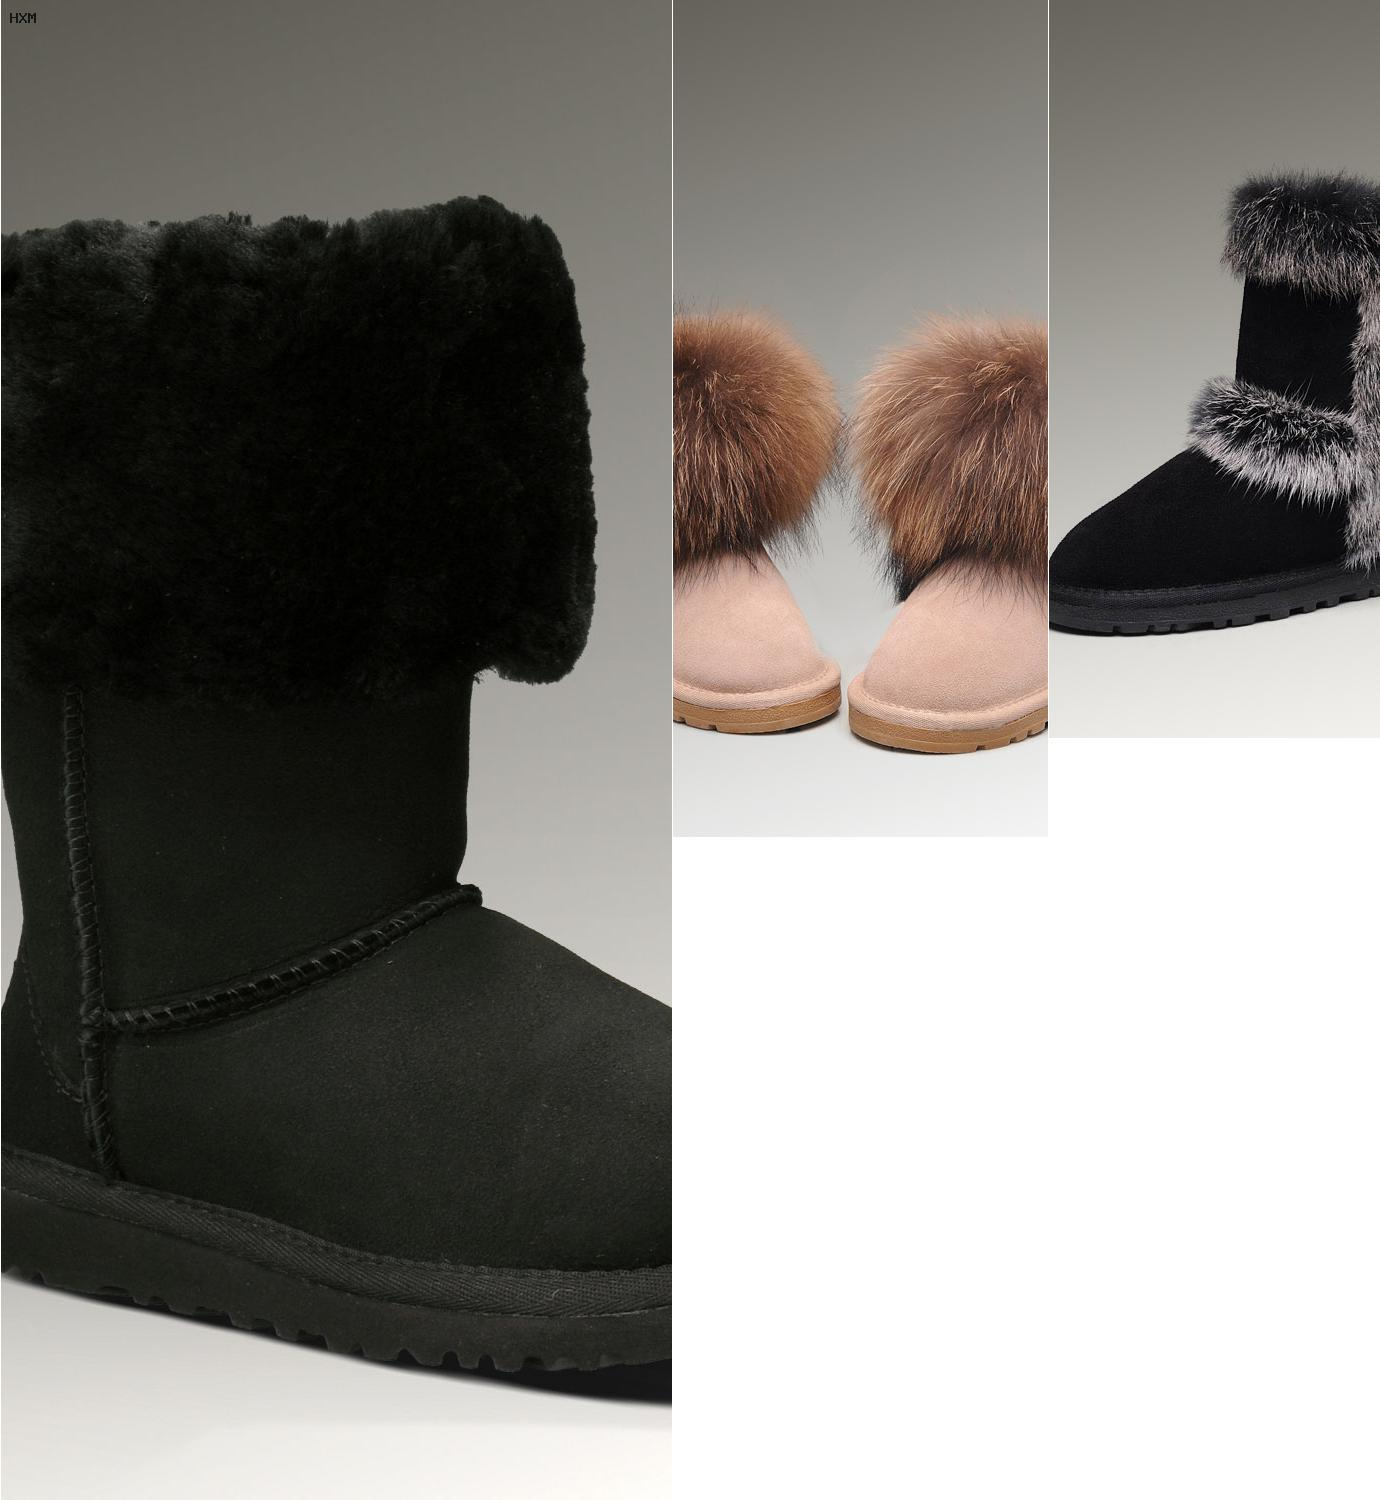 ugg look alikes for sale